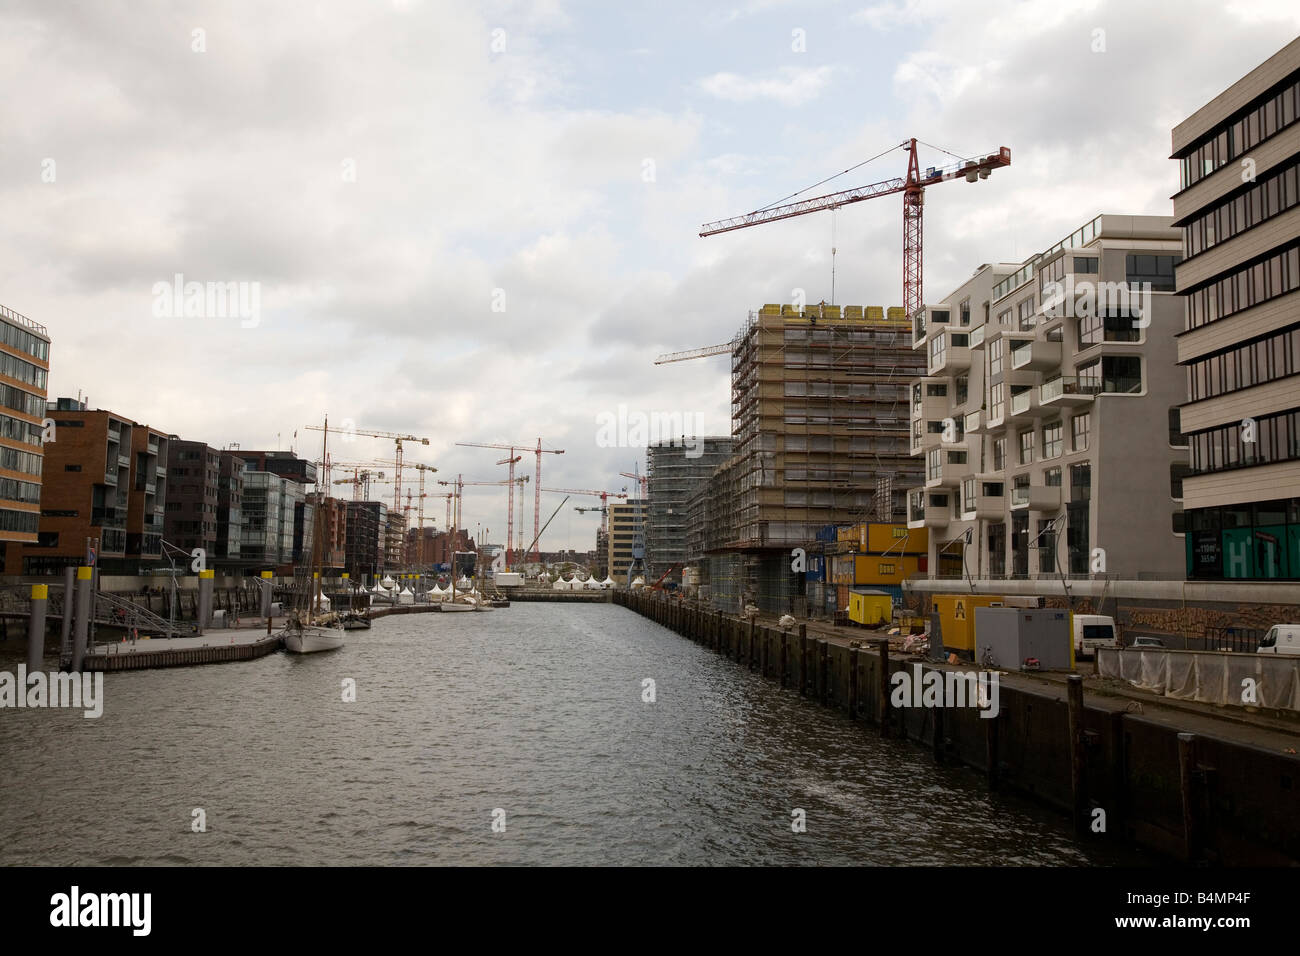 Construction in the Hafen City area of Hamburg, Germany. - Stock Image